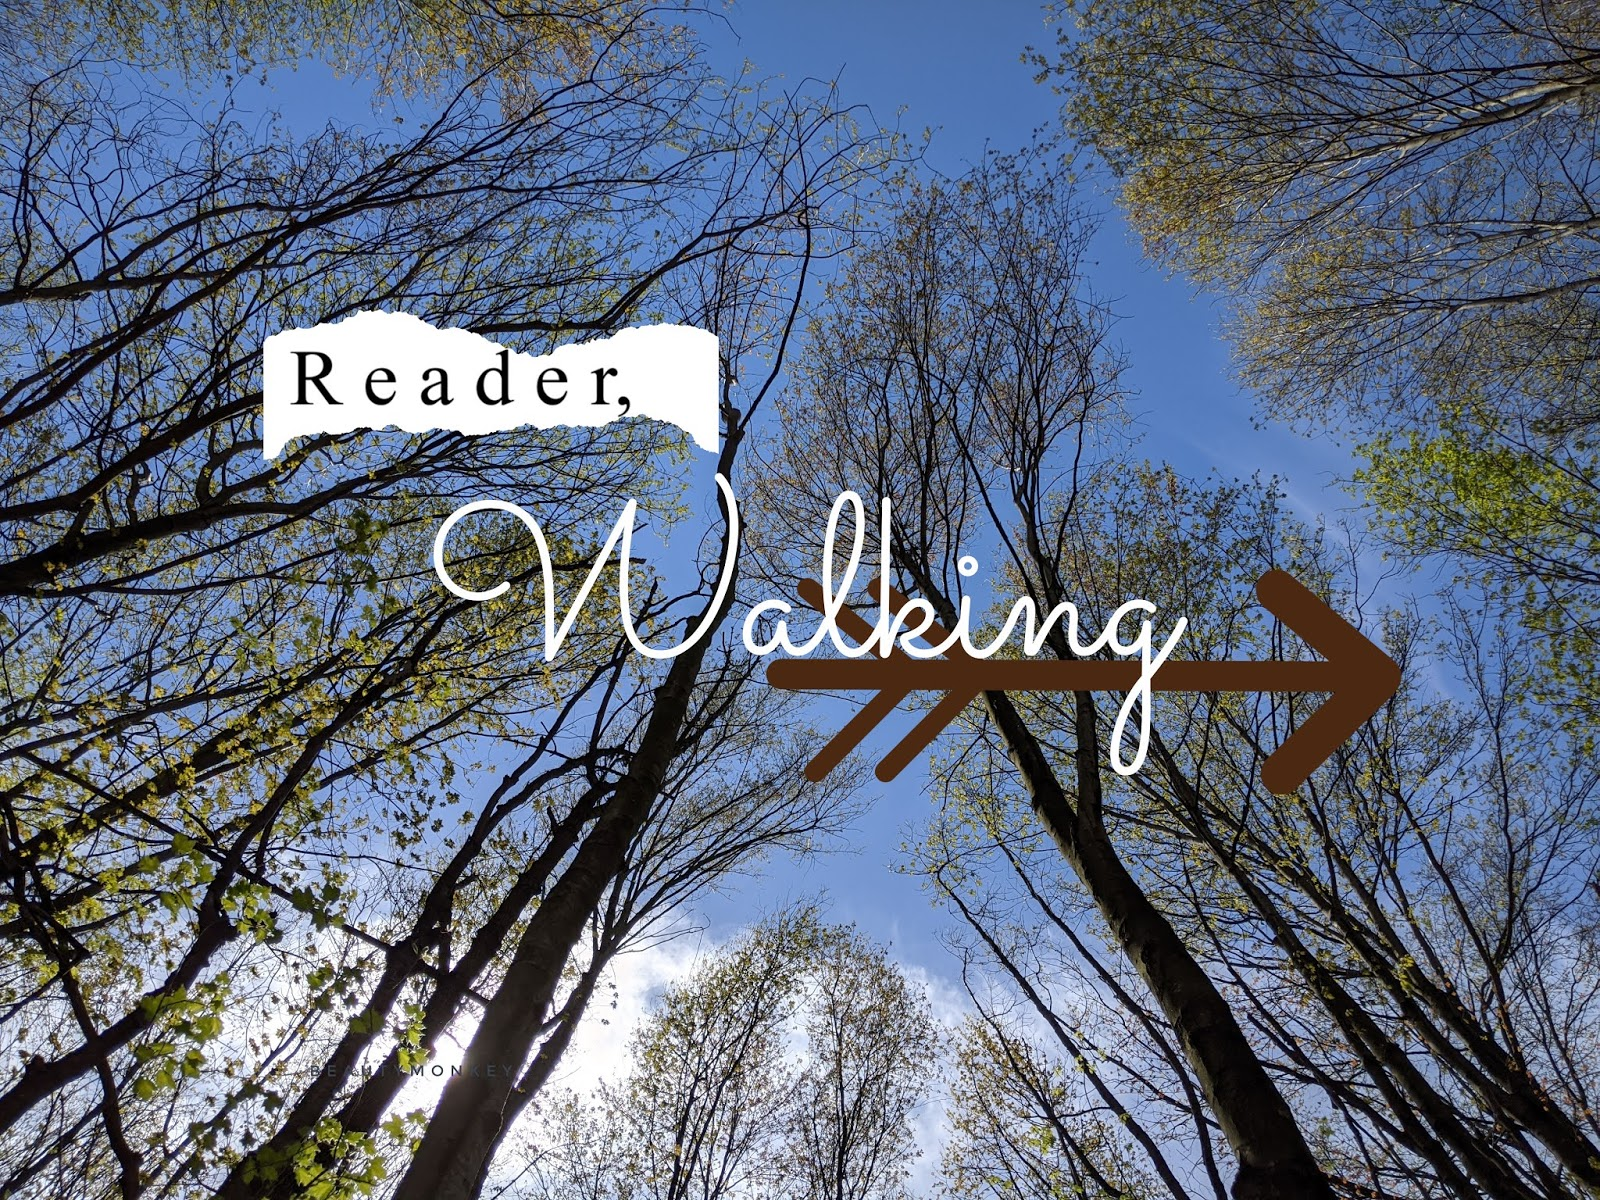 Reader, Walking: A Guide Along the Way